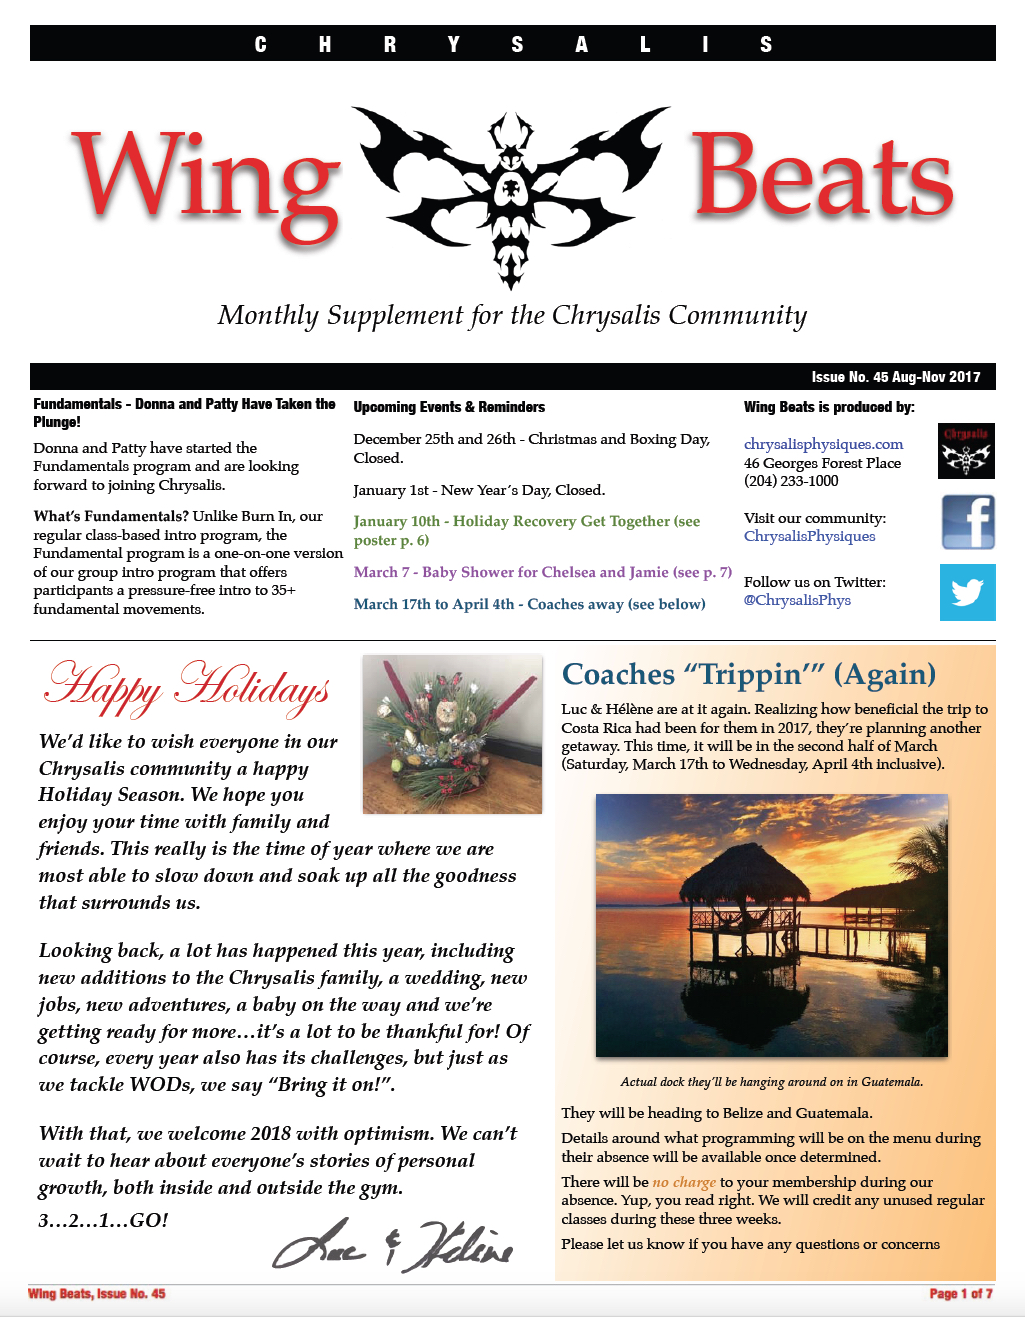 WingBeats Issue #45 - AugNov 2017